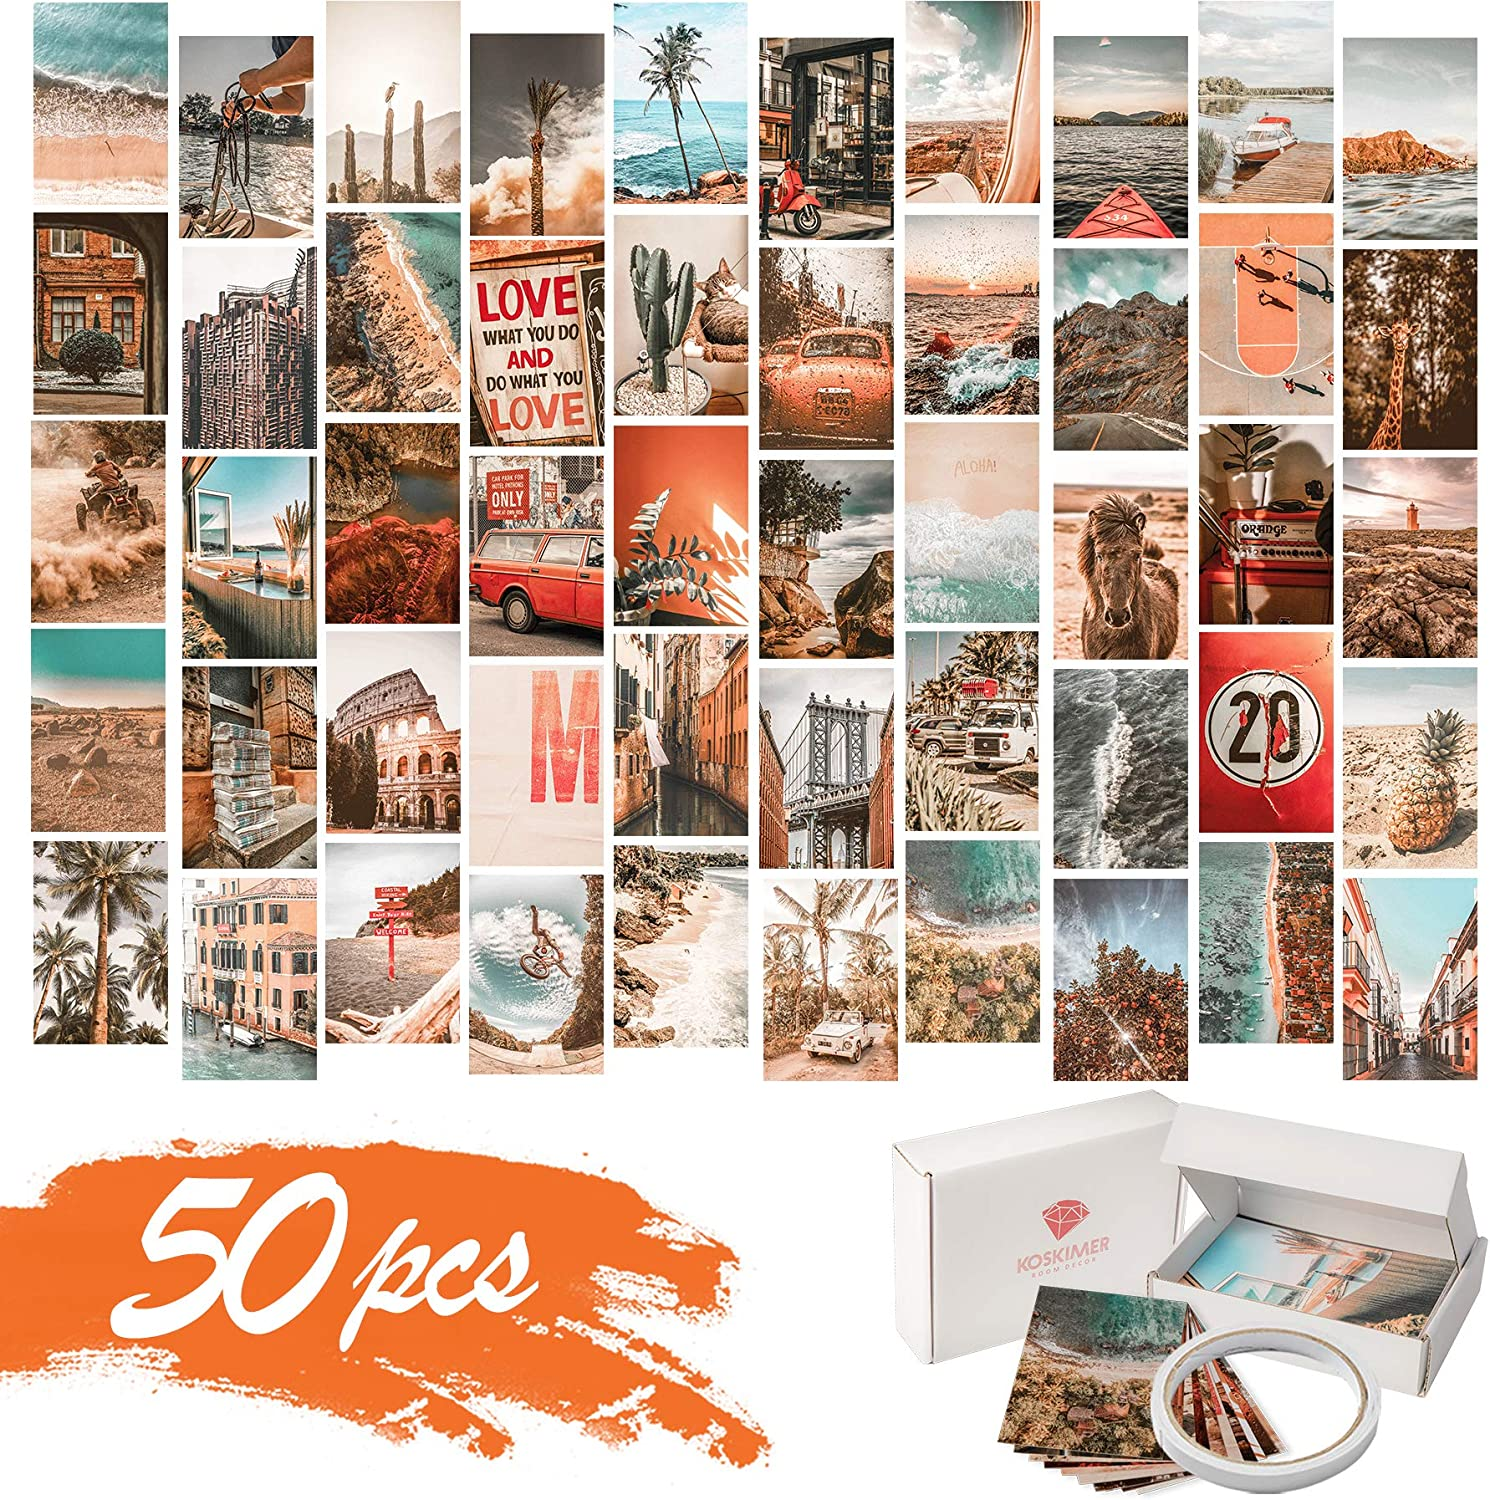 KOSKIMER Beach Teal Aesthetic Photo Collage Kit, 50 Set 4x6 Inch Wall Collage Kit Aesthetic Pictures, Bedroom Decor for Teen Girls, Boho Posters for Dorm Room Decor, Aesthetic Collage Kit